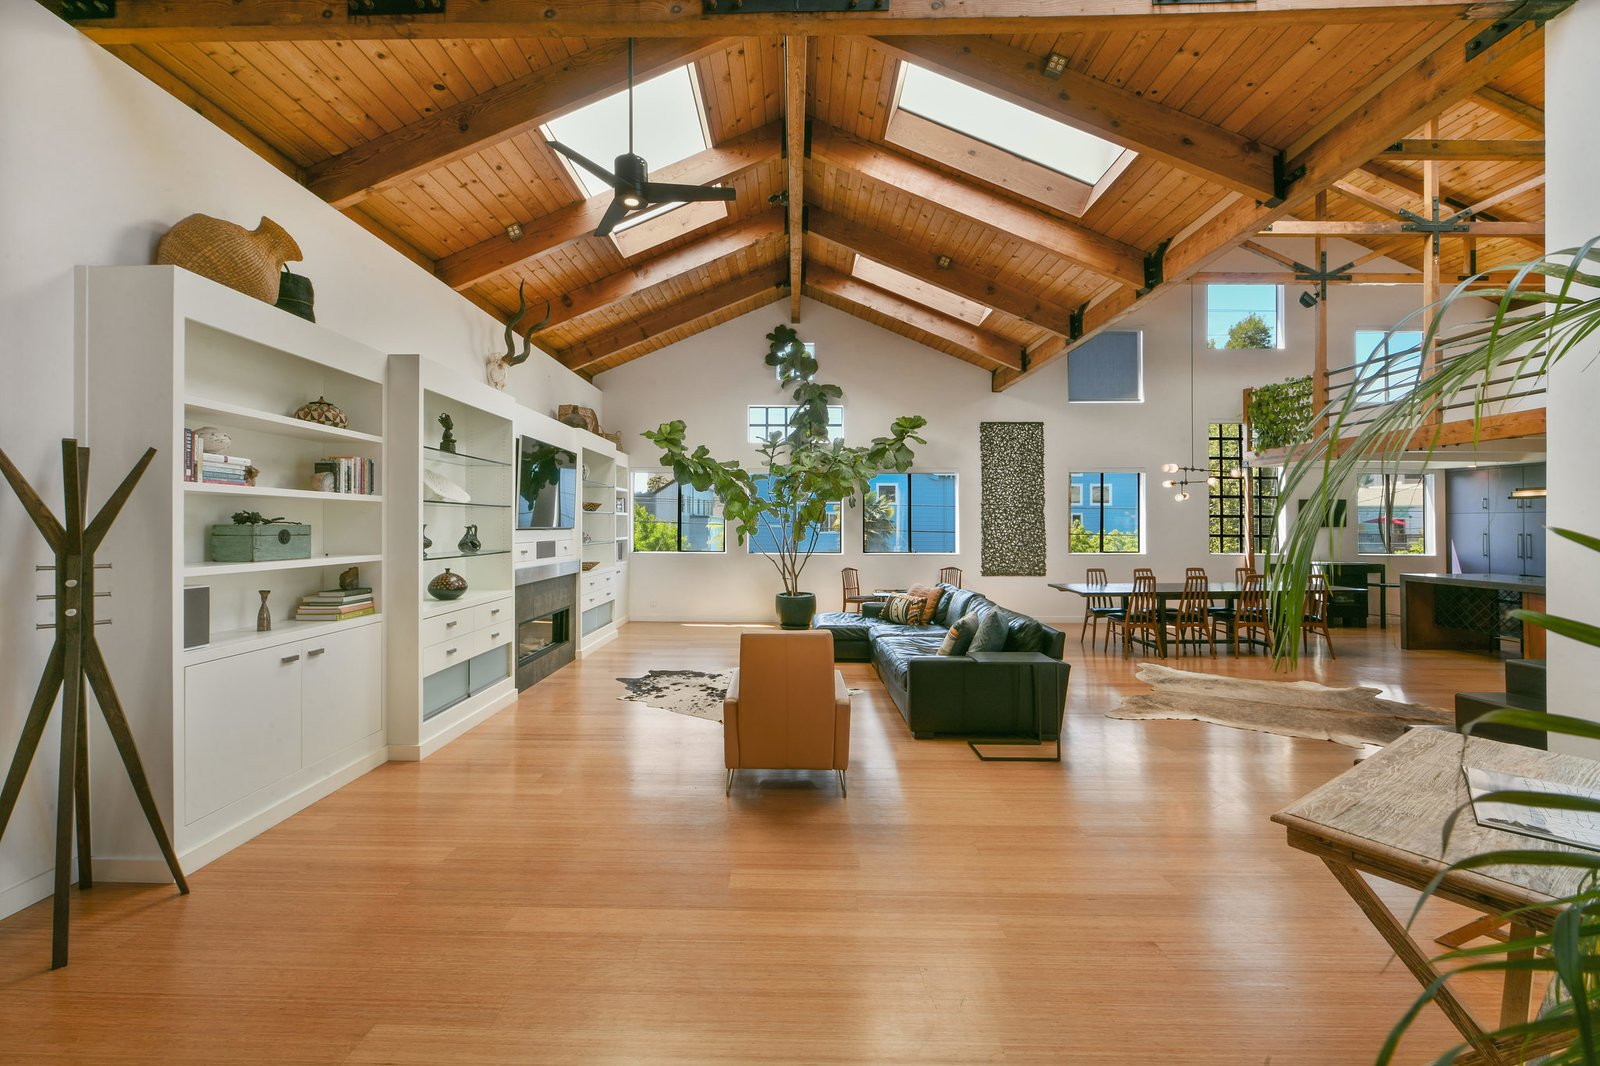 Photo 1 of 16 in Spend Your Days Working From Home in This Handsomely Renovated Oakland Loft for $1.2M